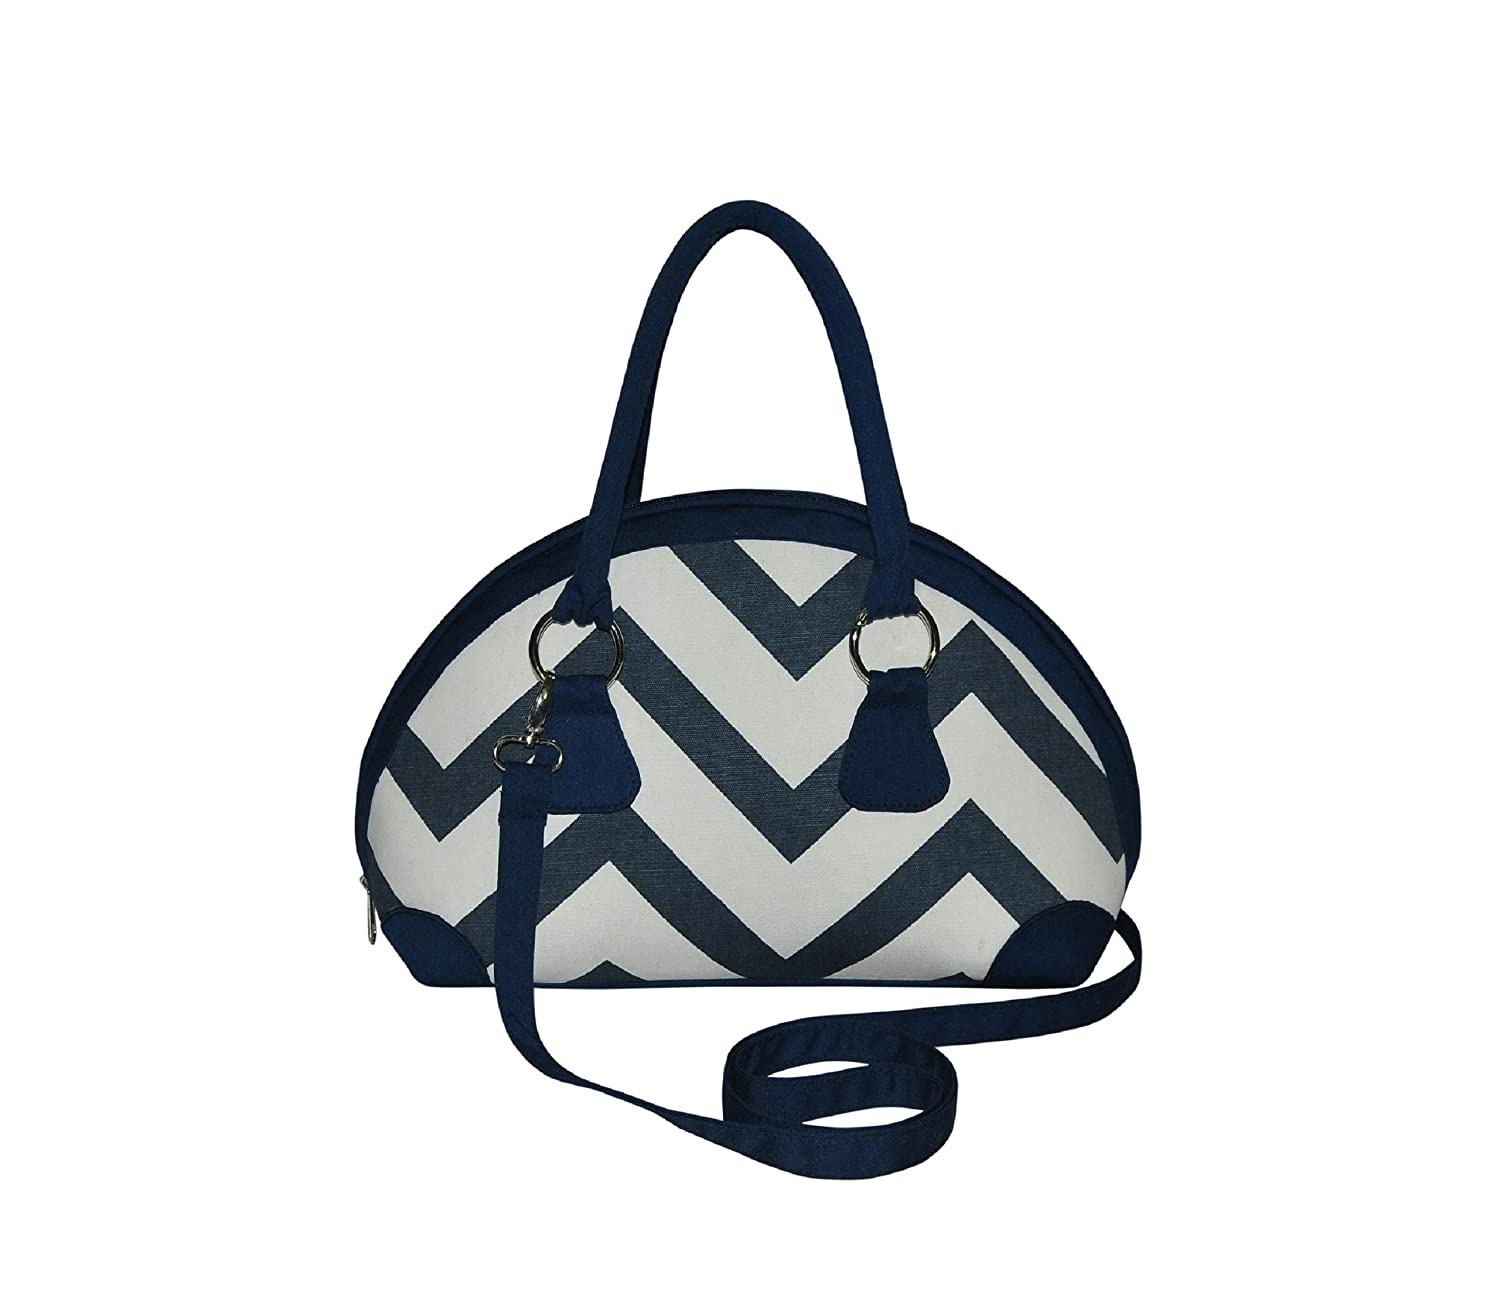 Bowling Fairtrade Chevron Canvas Handbag by Earth Squared Biscuit:  Amazon.co.uk: Shoes & Bags